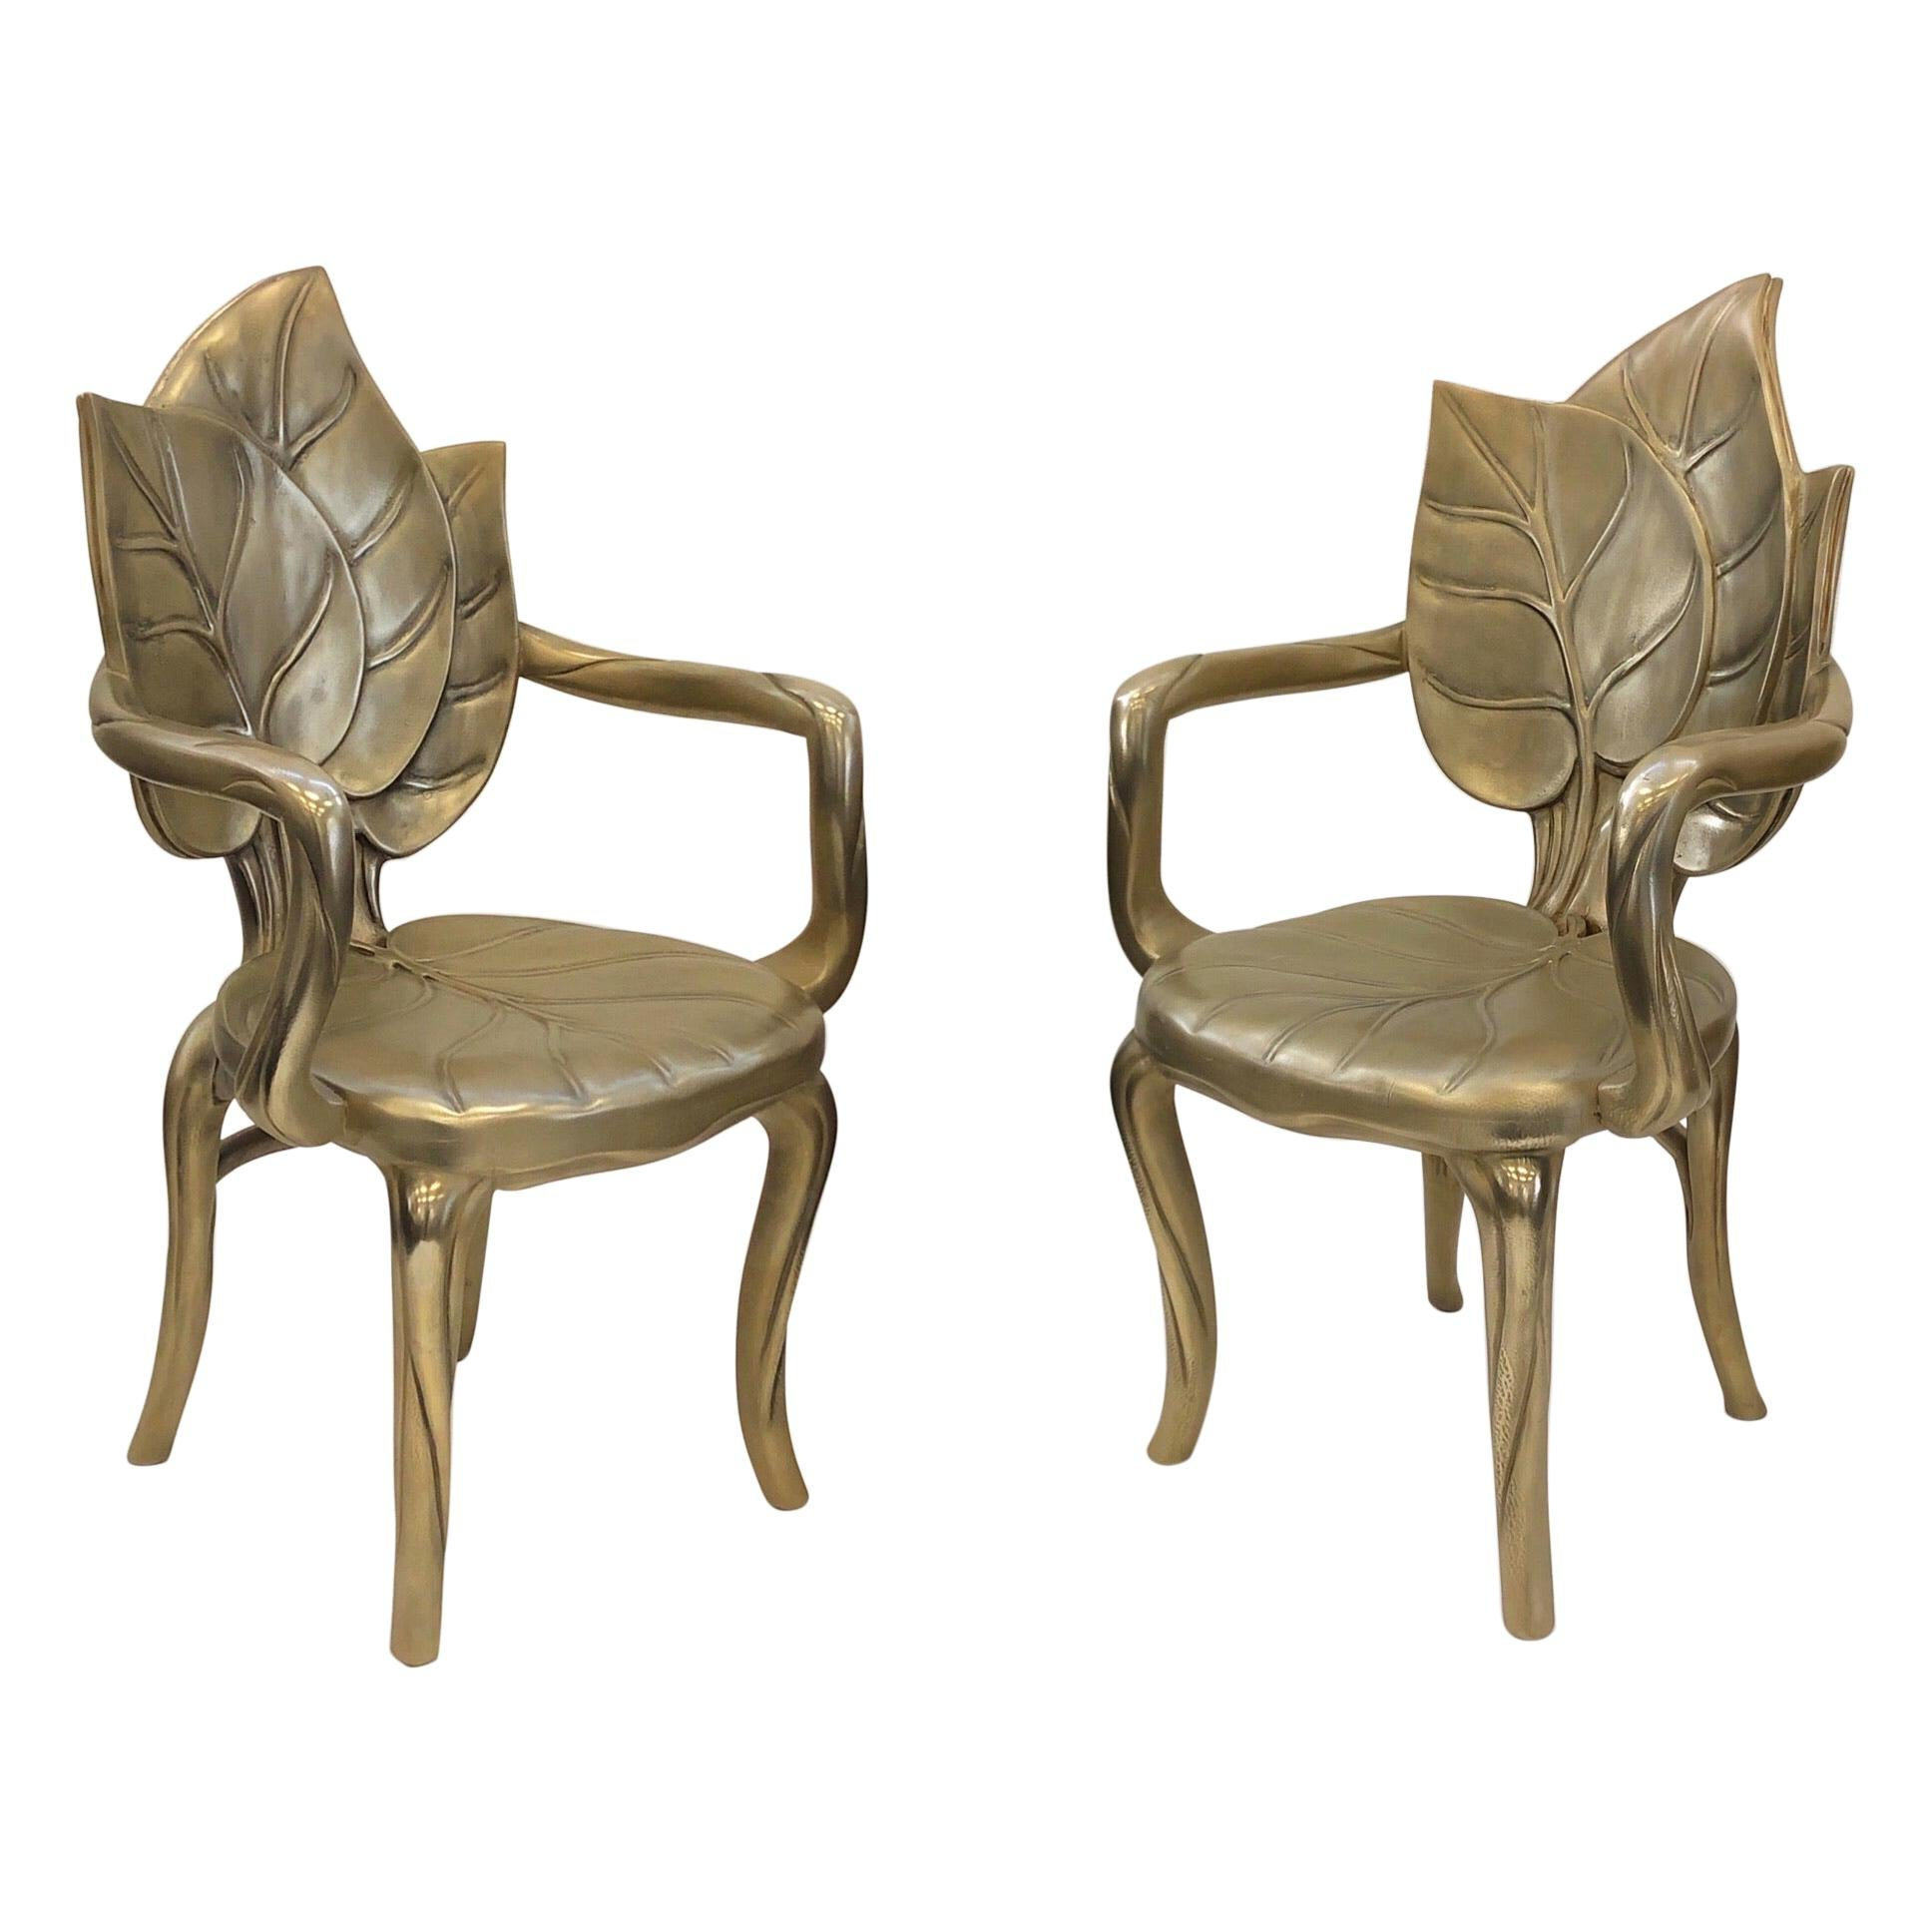 Pair of Italian Brass Carved Wooden Leaf Armchairs by Bartolozzi and Maioli